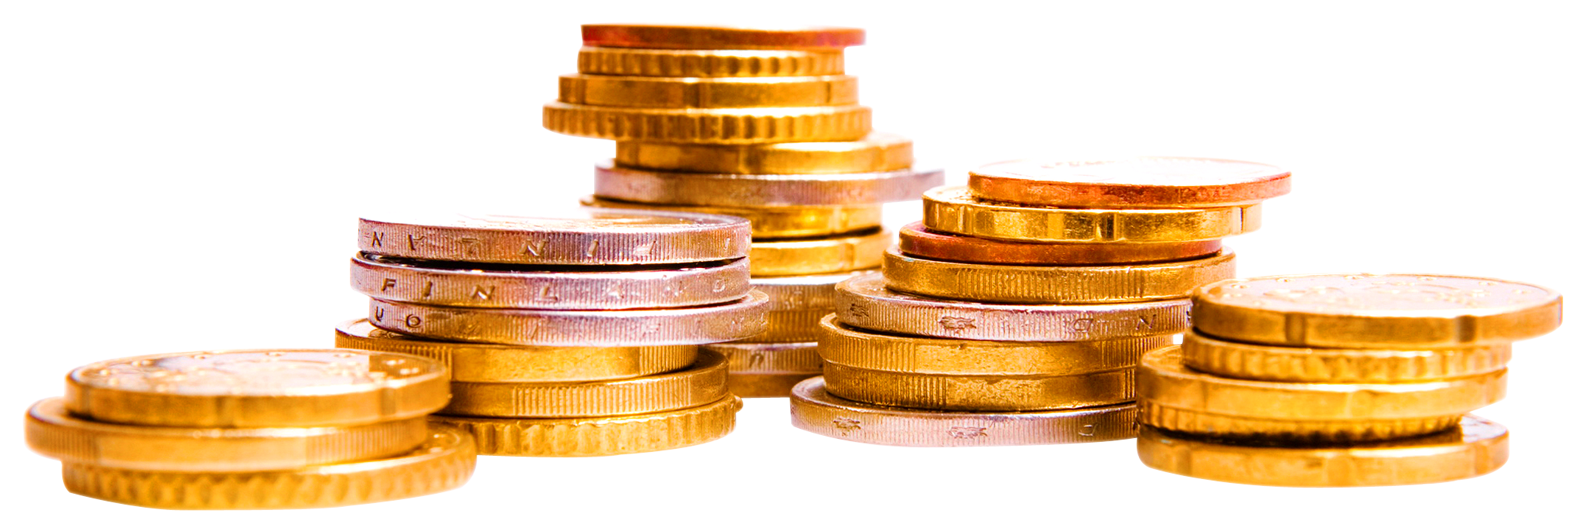 Coin clipart real gold. Png image purepng free